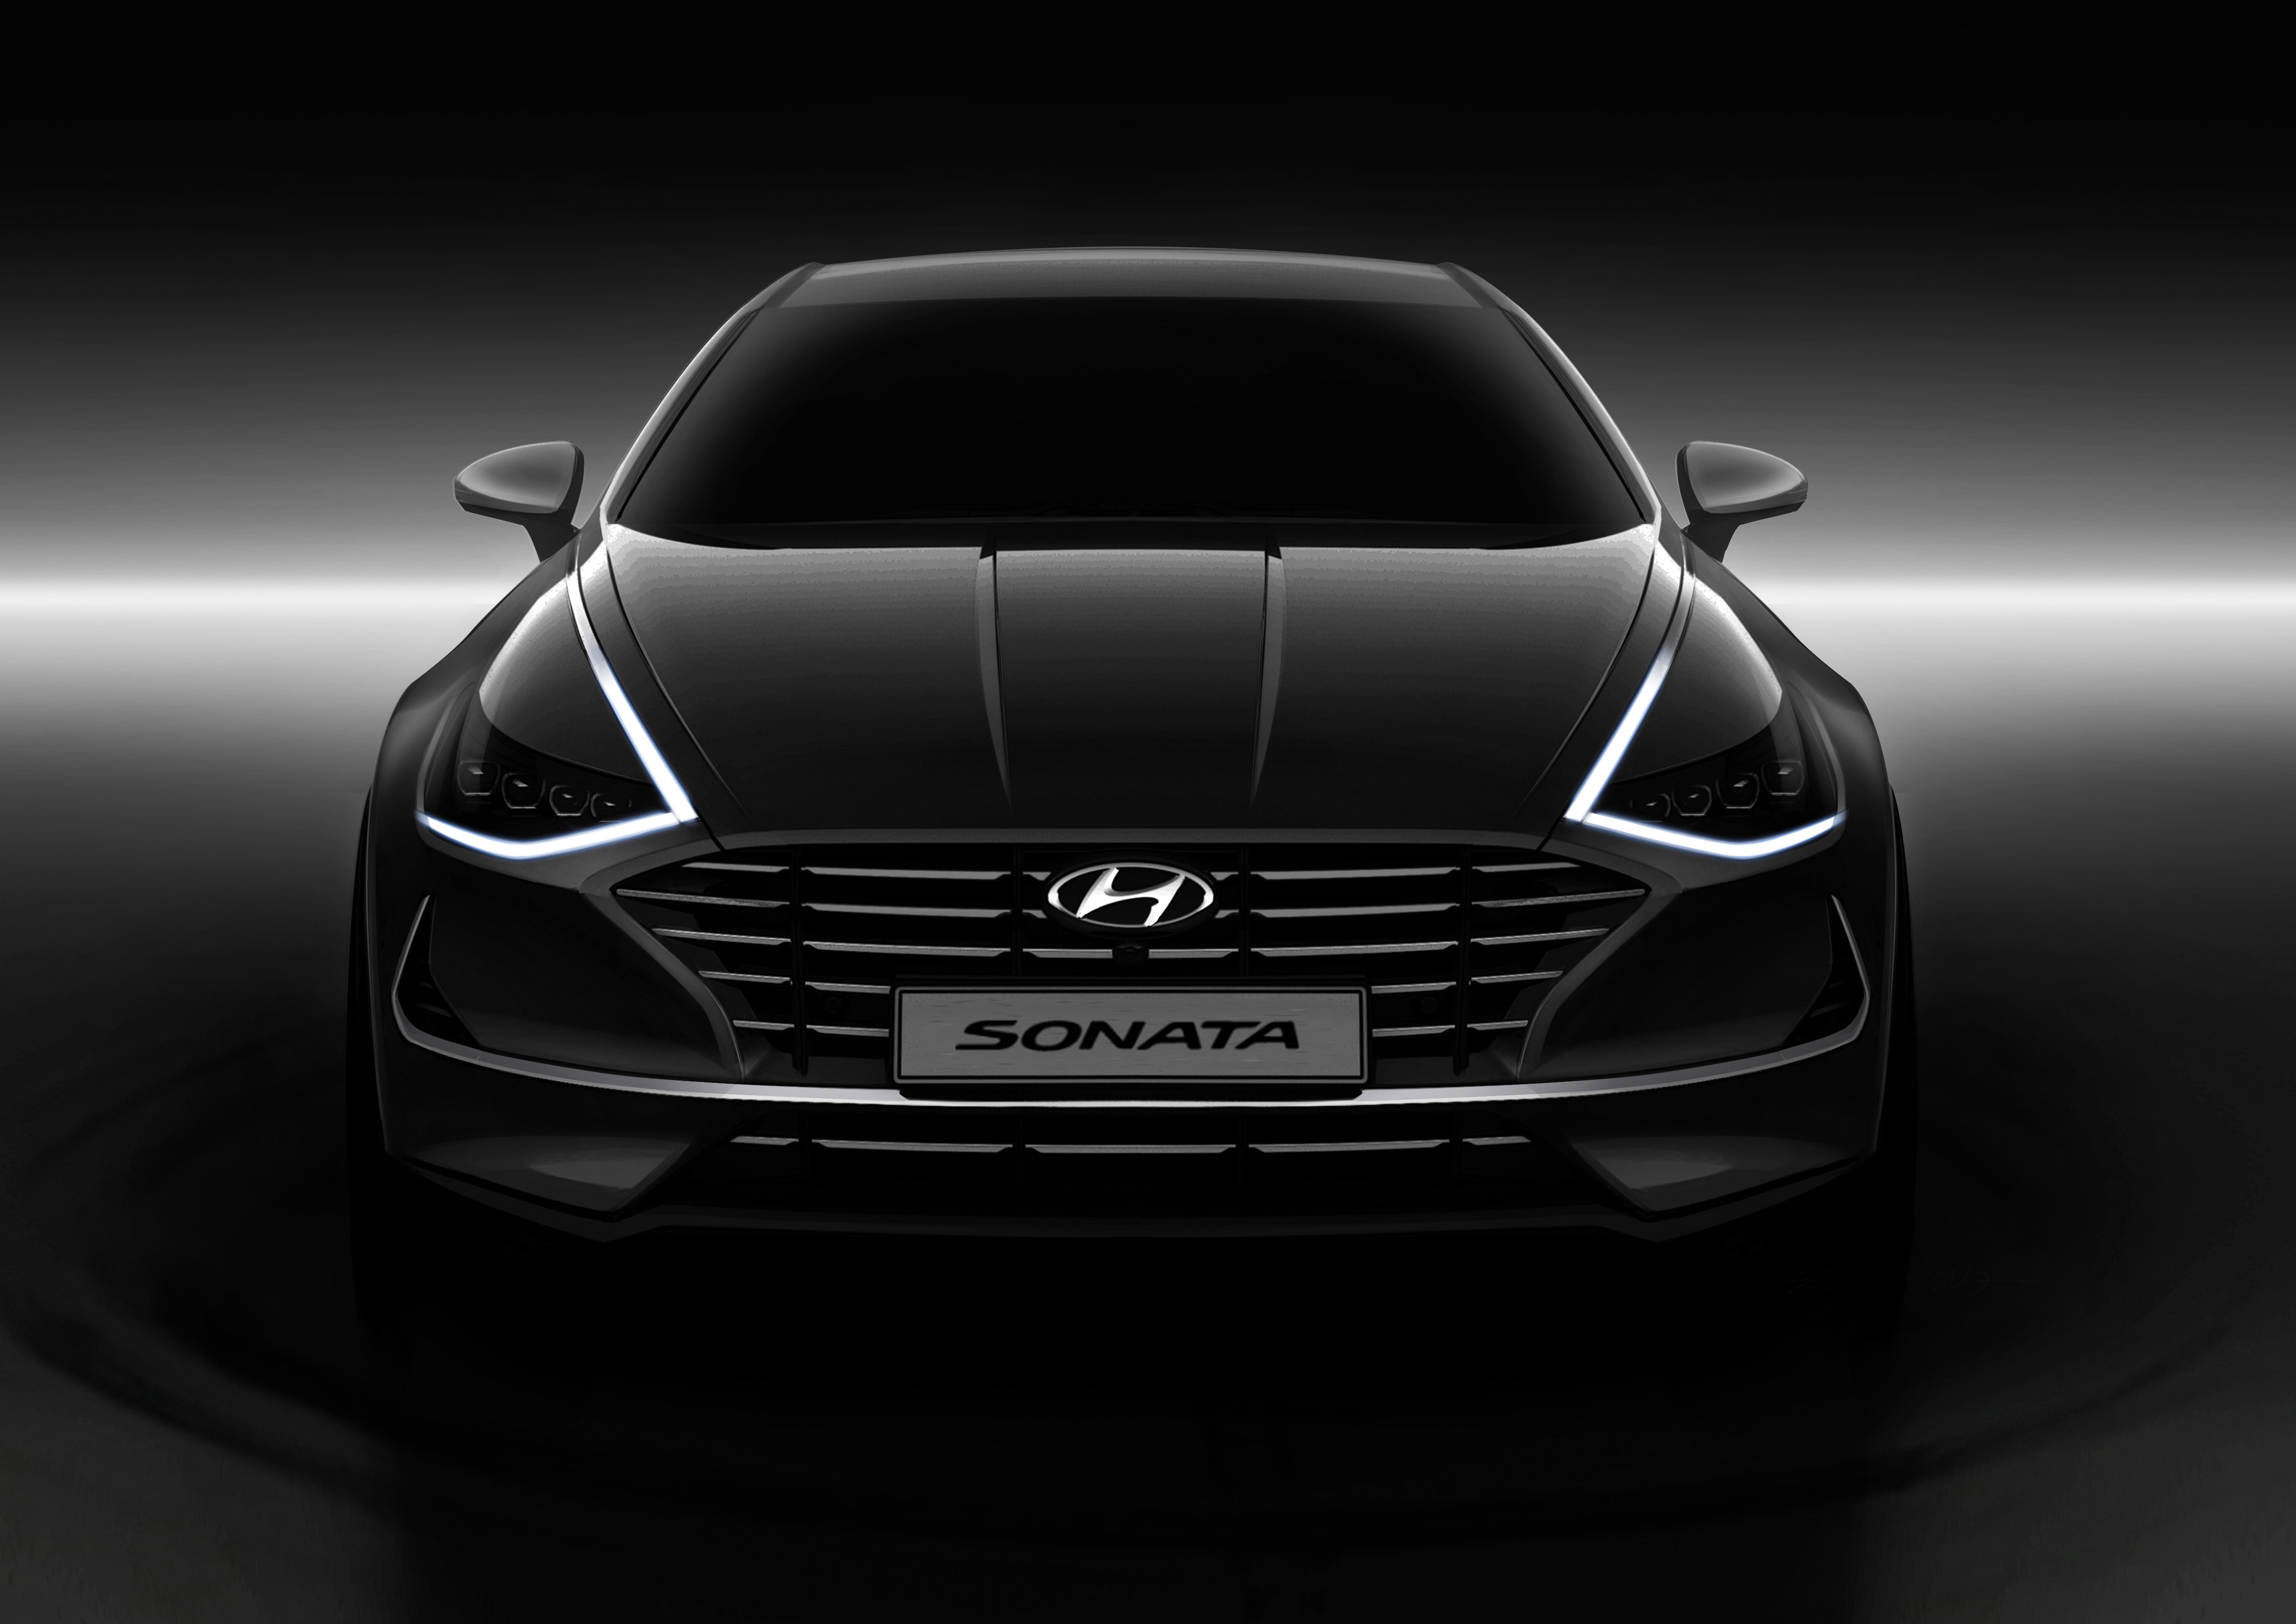 Hyundai Motor Shares First Glimpse of All-New Sonata (Photos) - Brand Spur